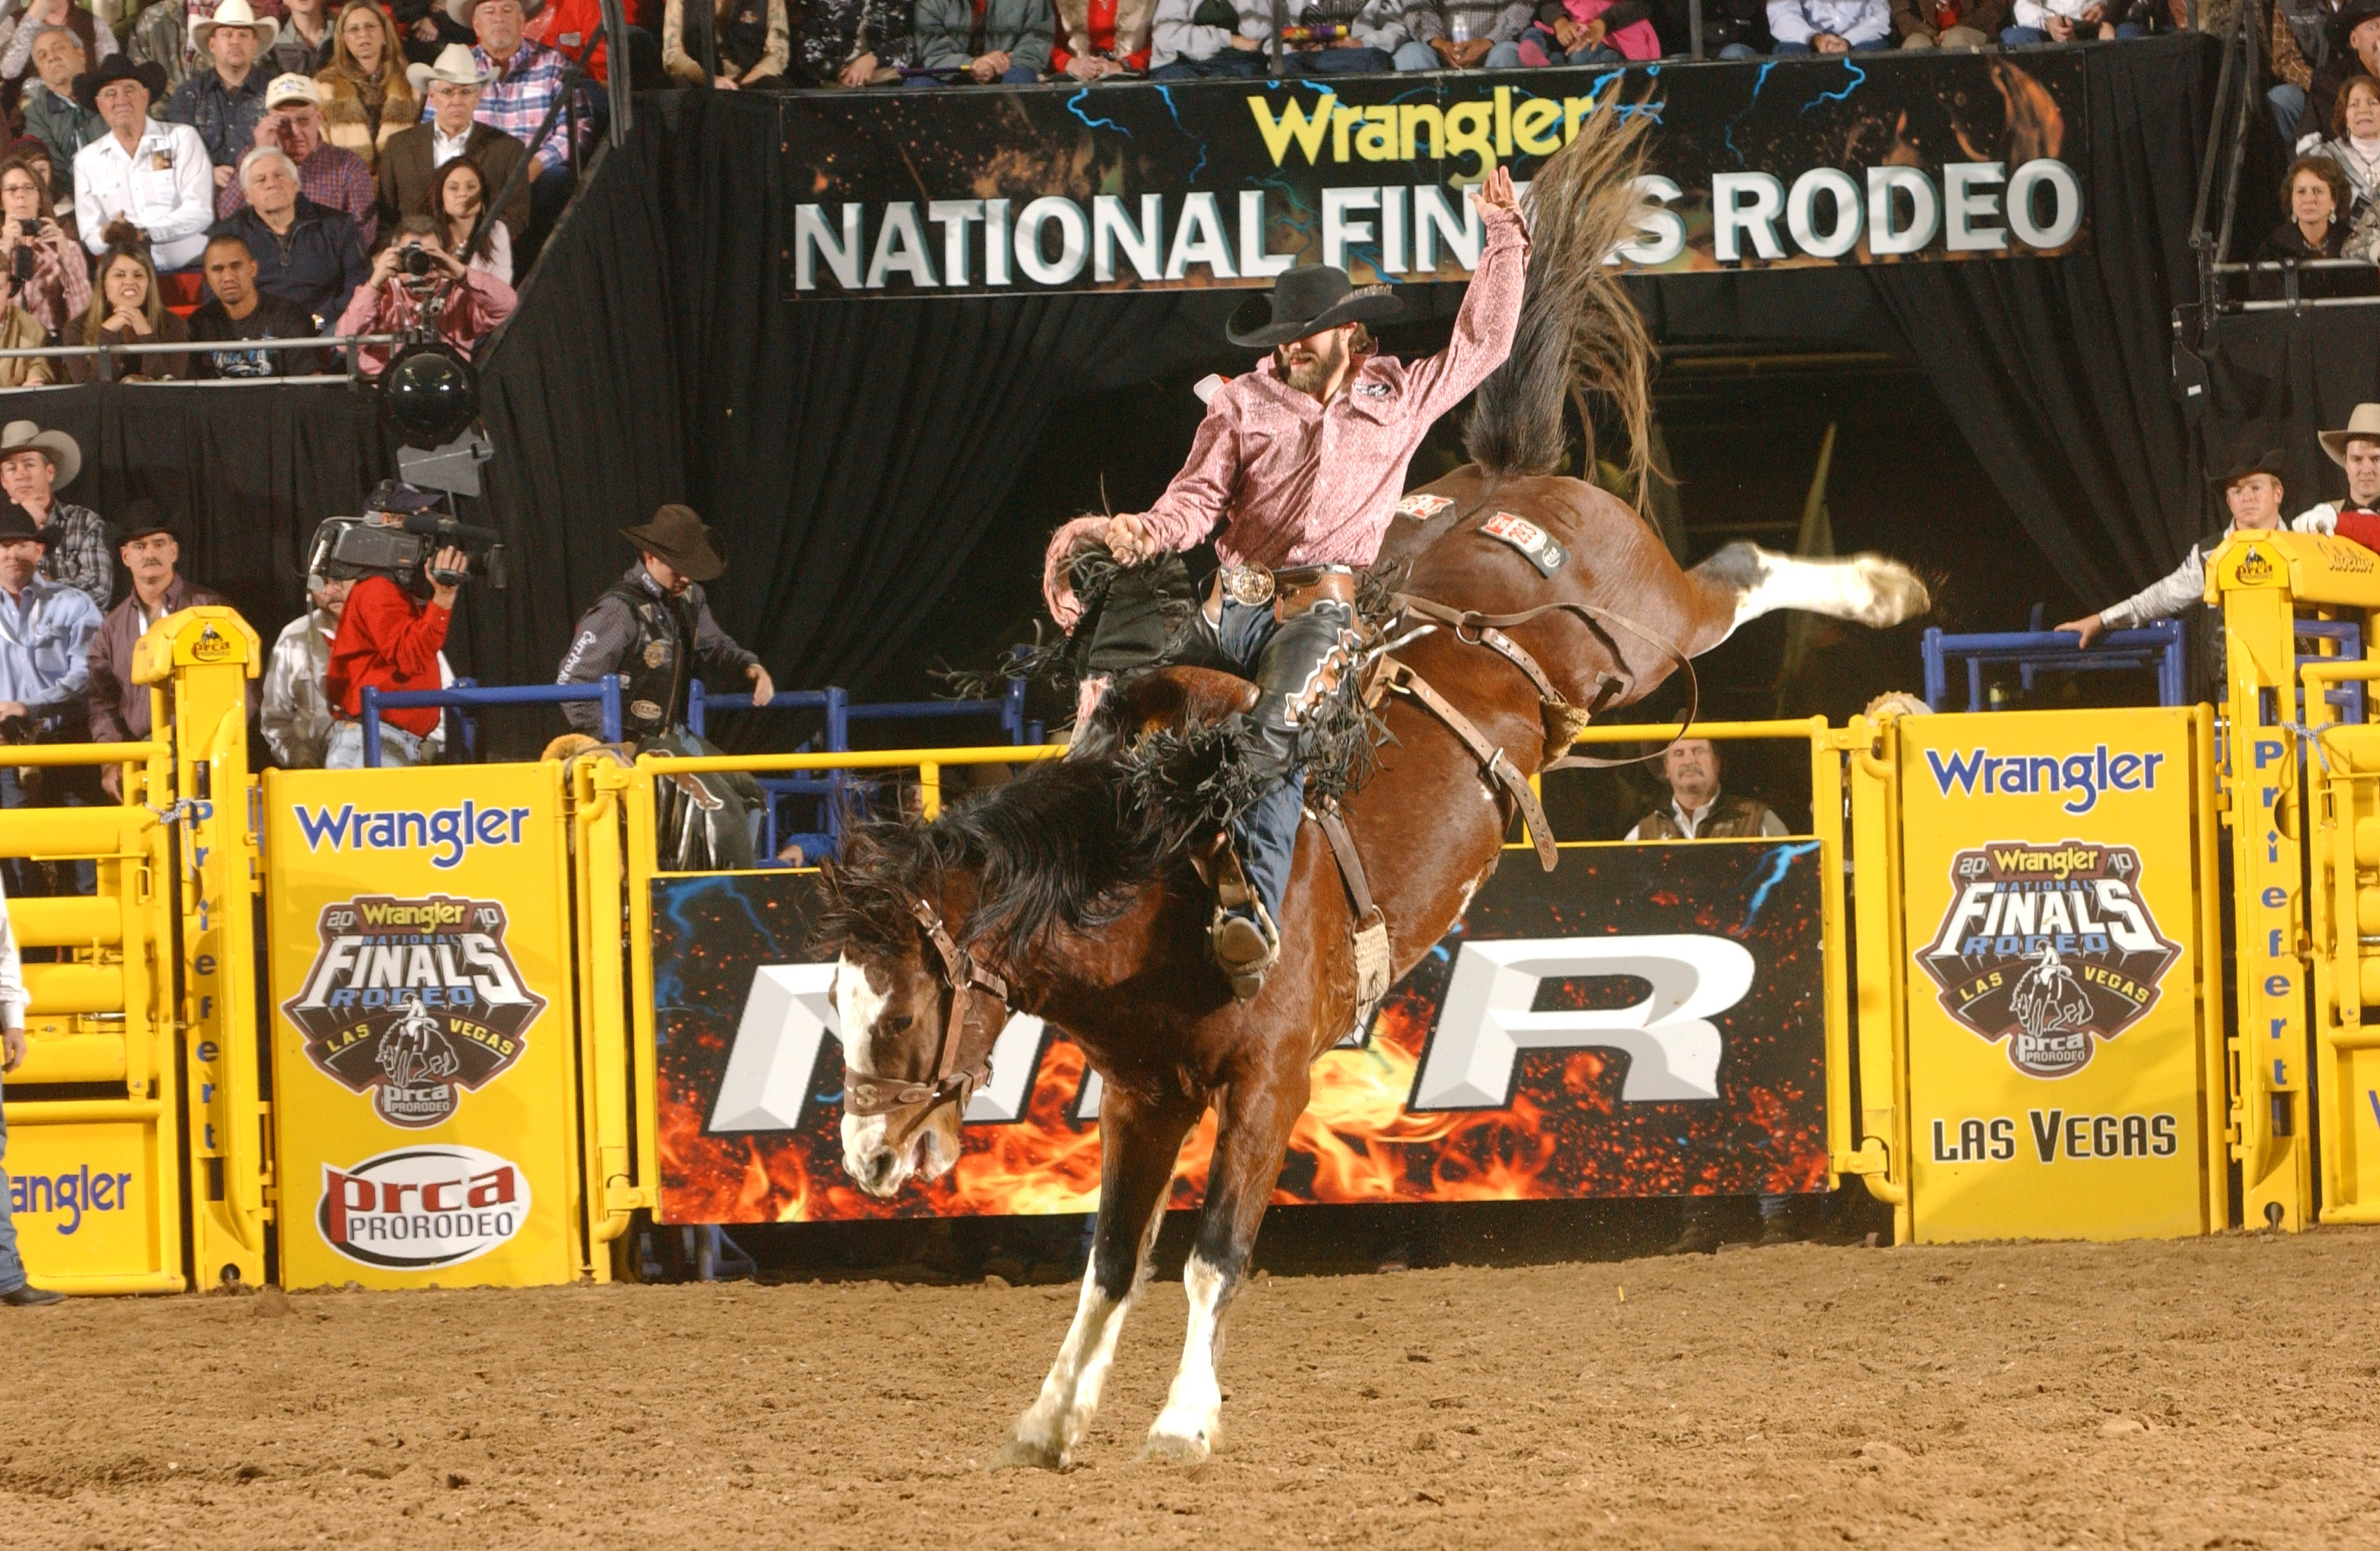 The Insider Your Guide To 2011 Nfr Las Vegas Galavantier